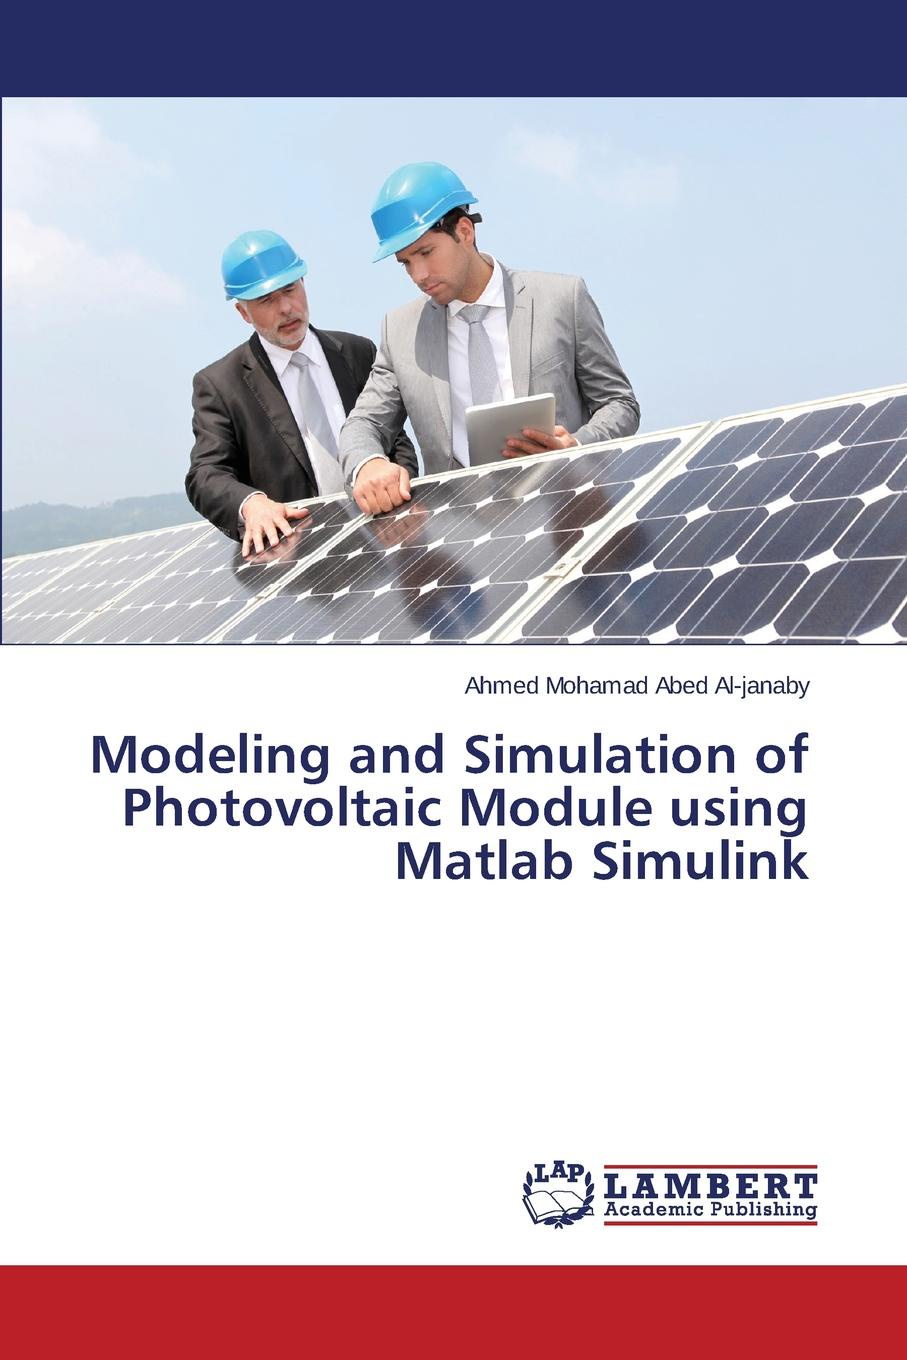 Al-janaby Ahmed Mohamad Abed Modeling and Simulation of Photovoltaic Module using Matlab Simulink rs485 isolation communication module 232 to 485 converter serial port conversion module